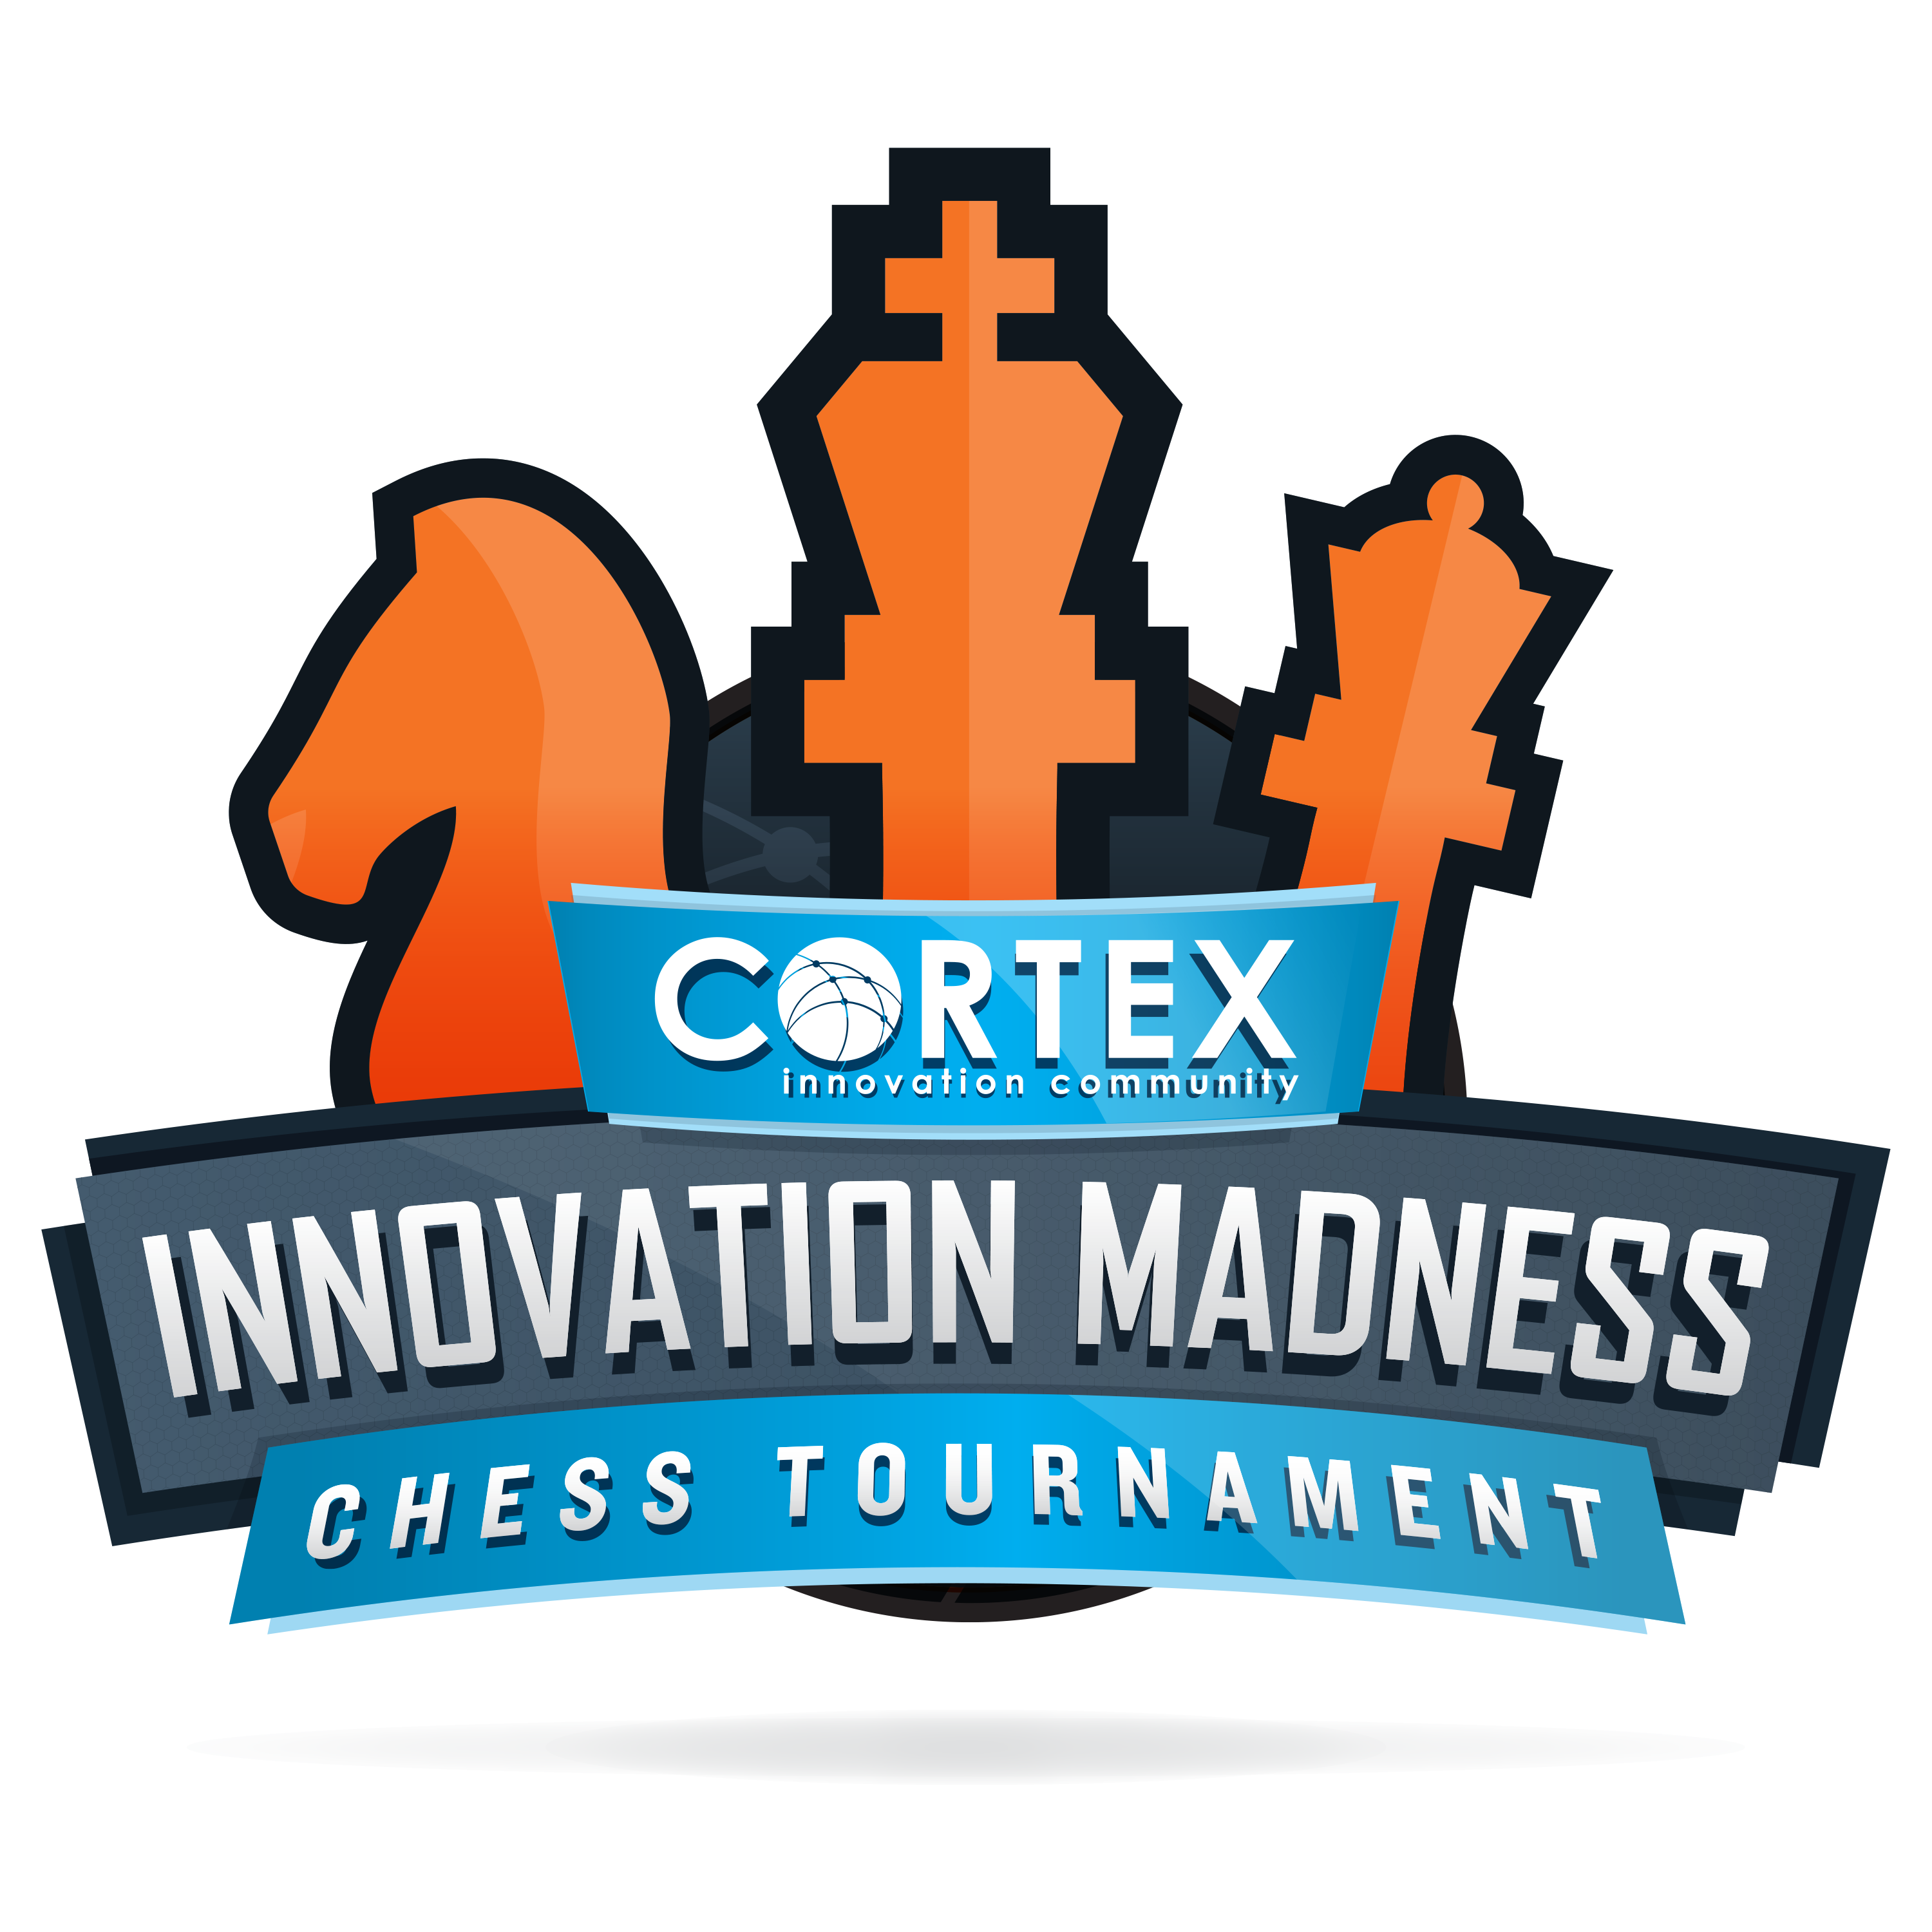 2015 Innovation Madness Chess Tournament.